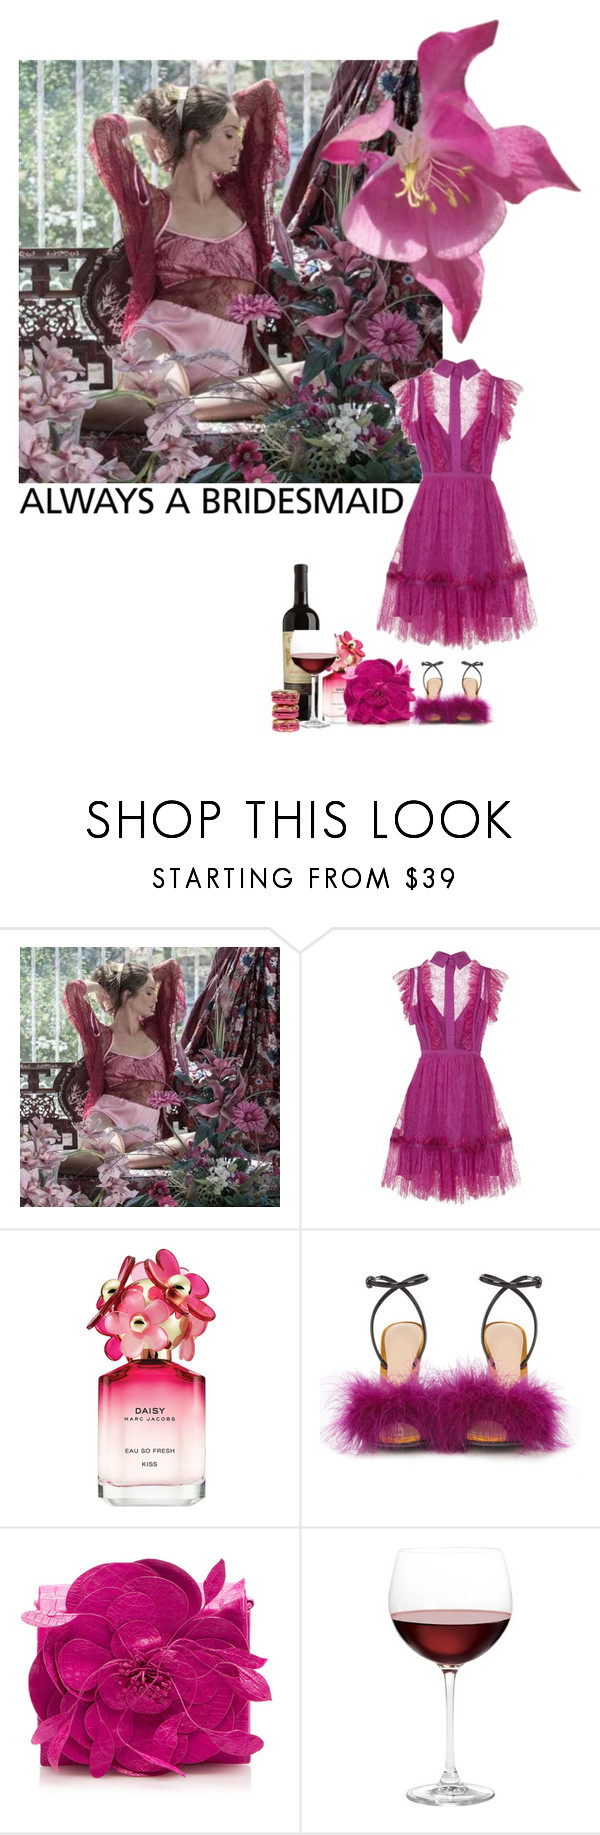 """""""always bridesmaid"""" by izoche ❤ liked on Polyvore featuring Elie Saab, Marc Jacobs, Marco de Vincenzo, Nancy Gonzalez, Nordstrom, Le Pink and alwaysbridesmaid"""